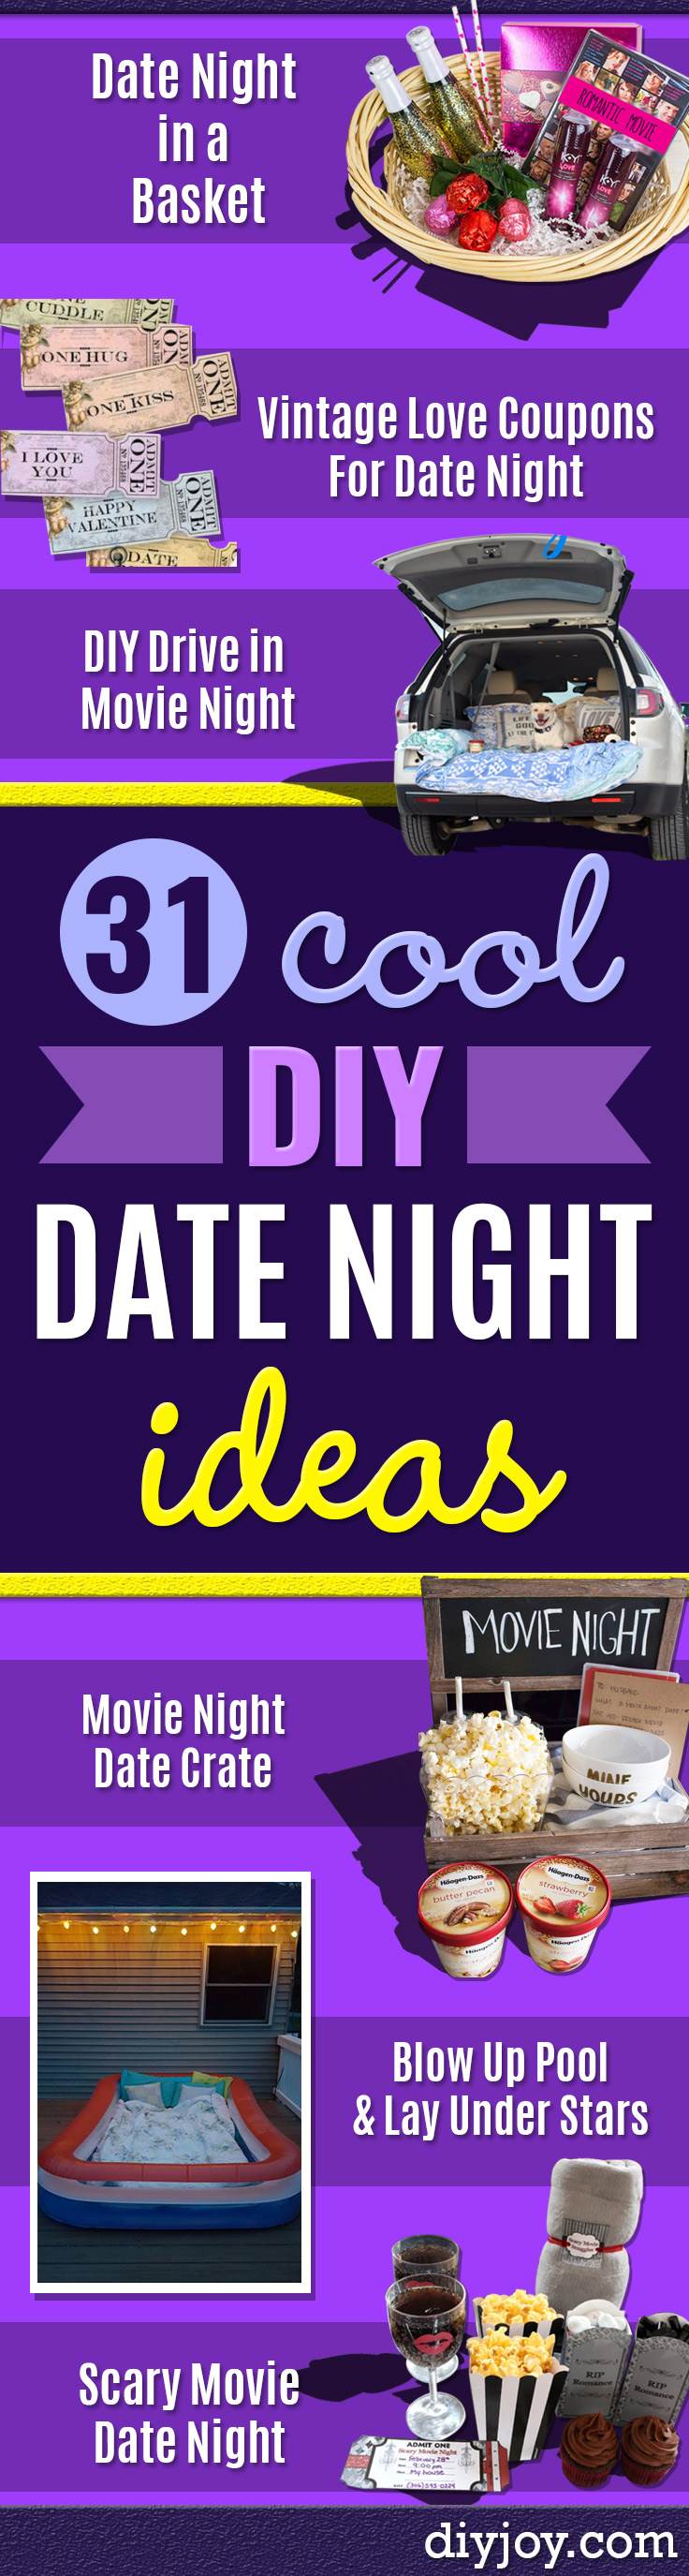 DIY Date Night Ideas - Creative Ways to Go On Inexpensive Dates - Creative Ways for Couples to Spend Time Together - Cute Kits and Cool DIY Gift Ideas for Men and Women - Cheap Ways to Have Fun With Your Husbnad or Wife, Girlfriend or Boyfriend - Valentines Day Date Ideas http://diyjoy.com/diy-date-night-ideas